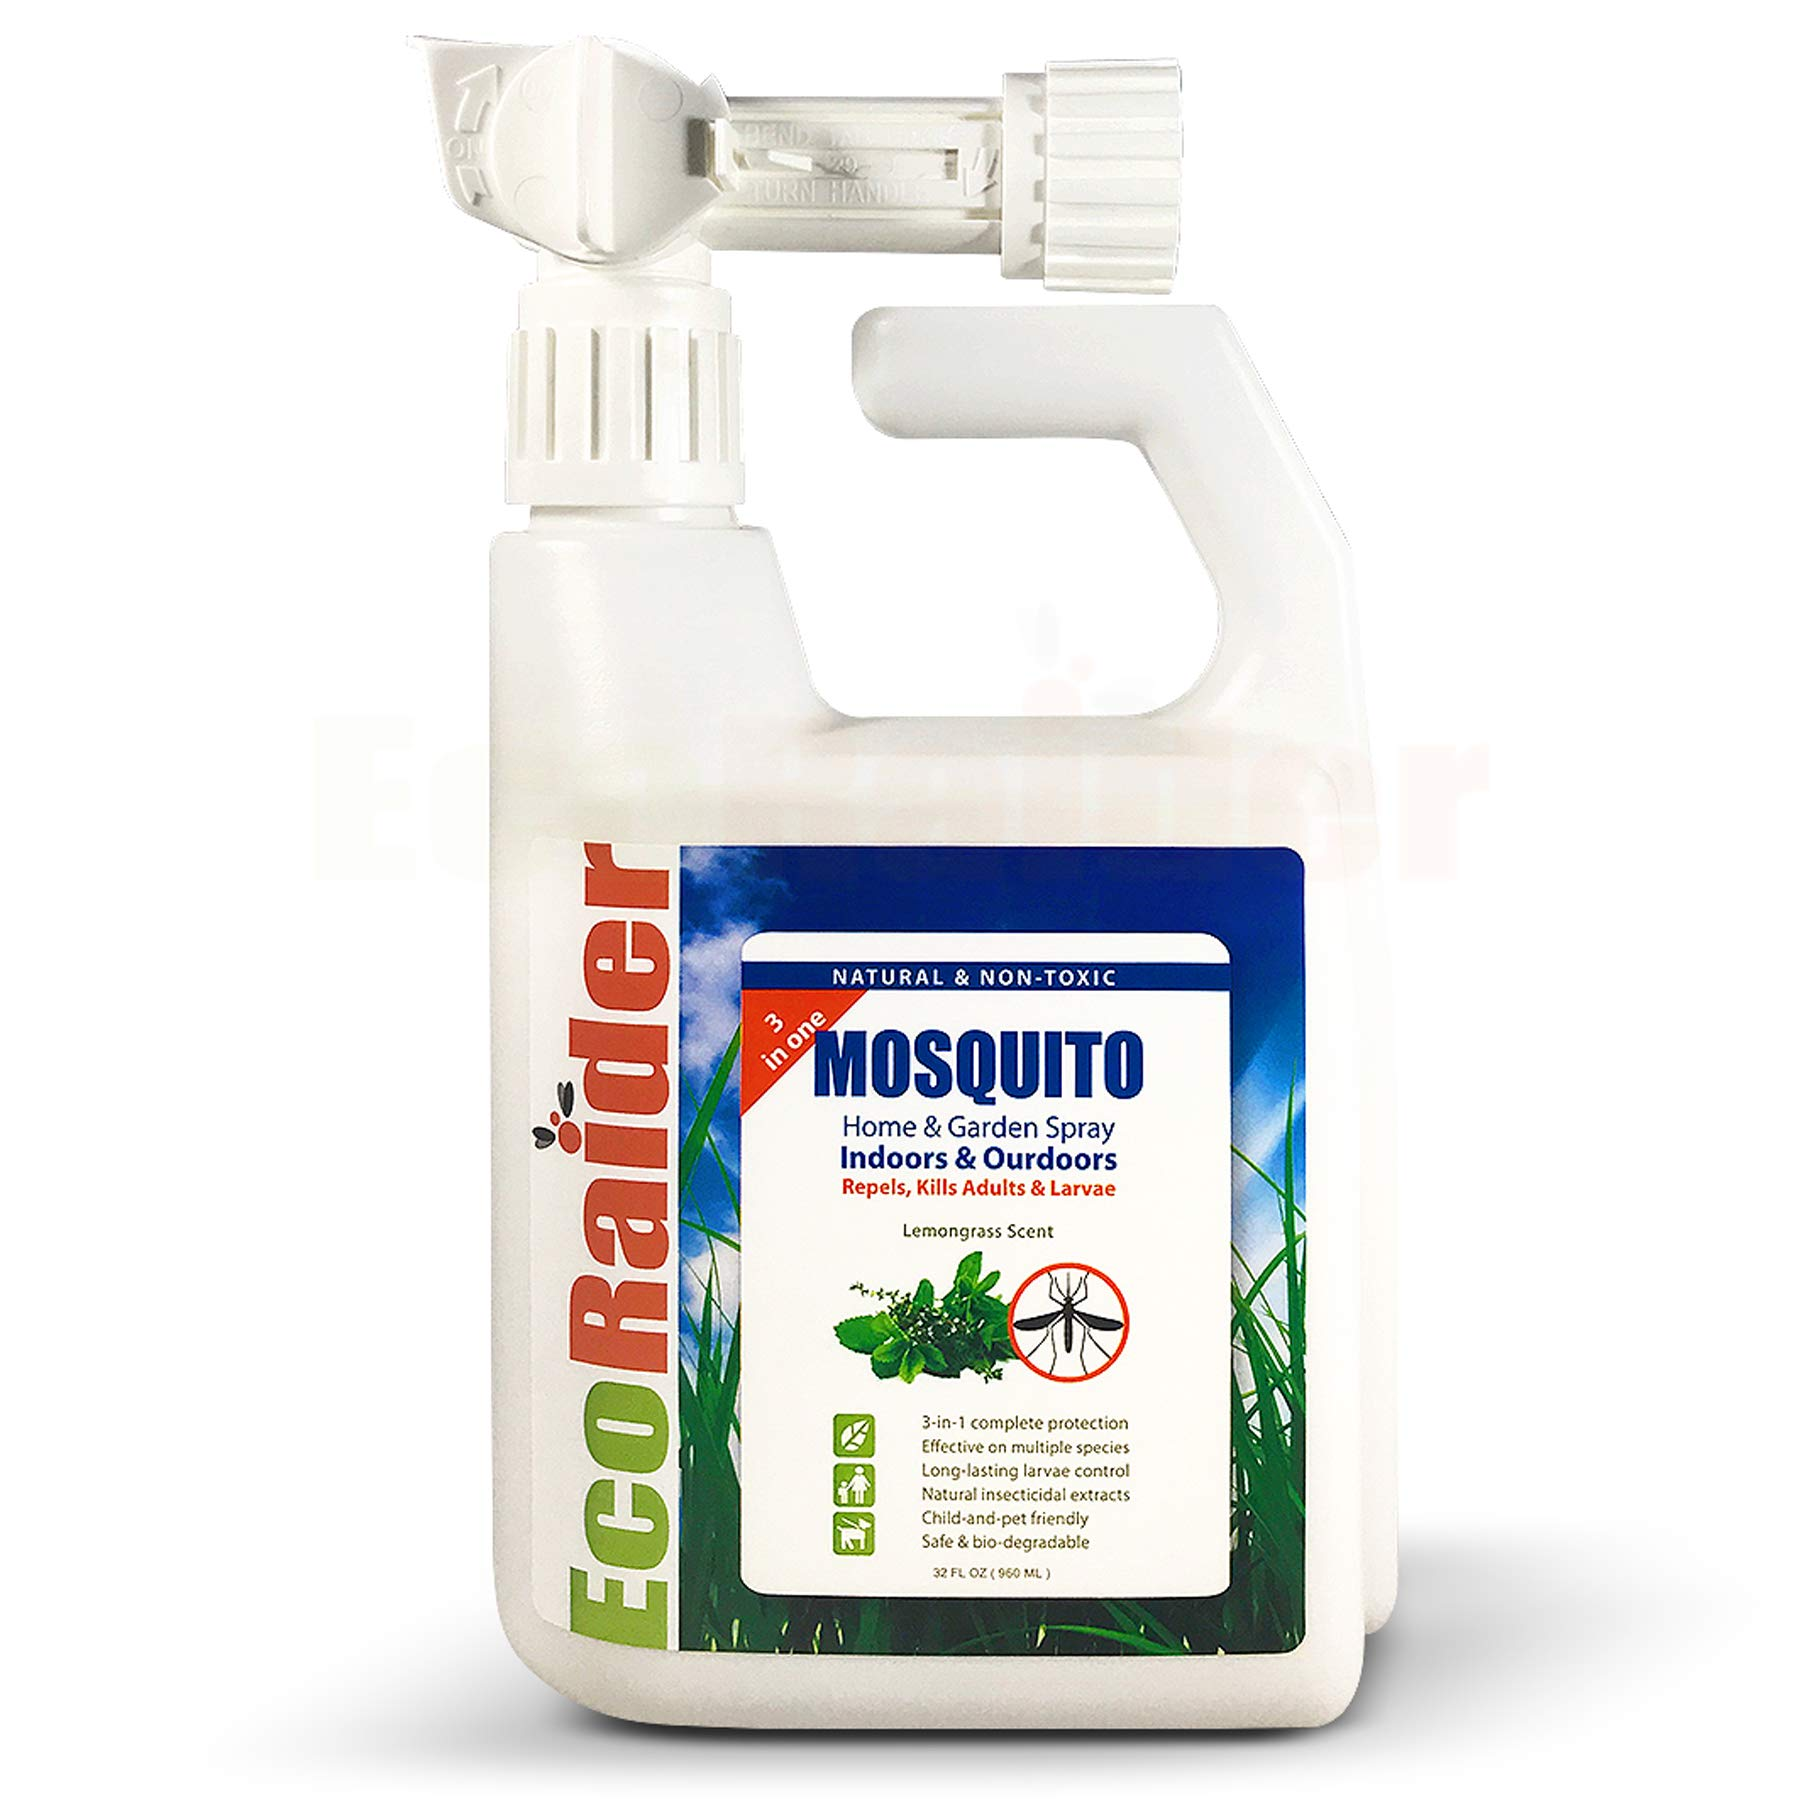 EcoRaider Mosquito Yard Treatment 32OZ, 3-in-One Triple-action, Kills Mosquito+ Kills Larvae + Repellent, Lasting Protection, Children and Pets Friendly